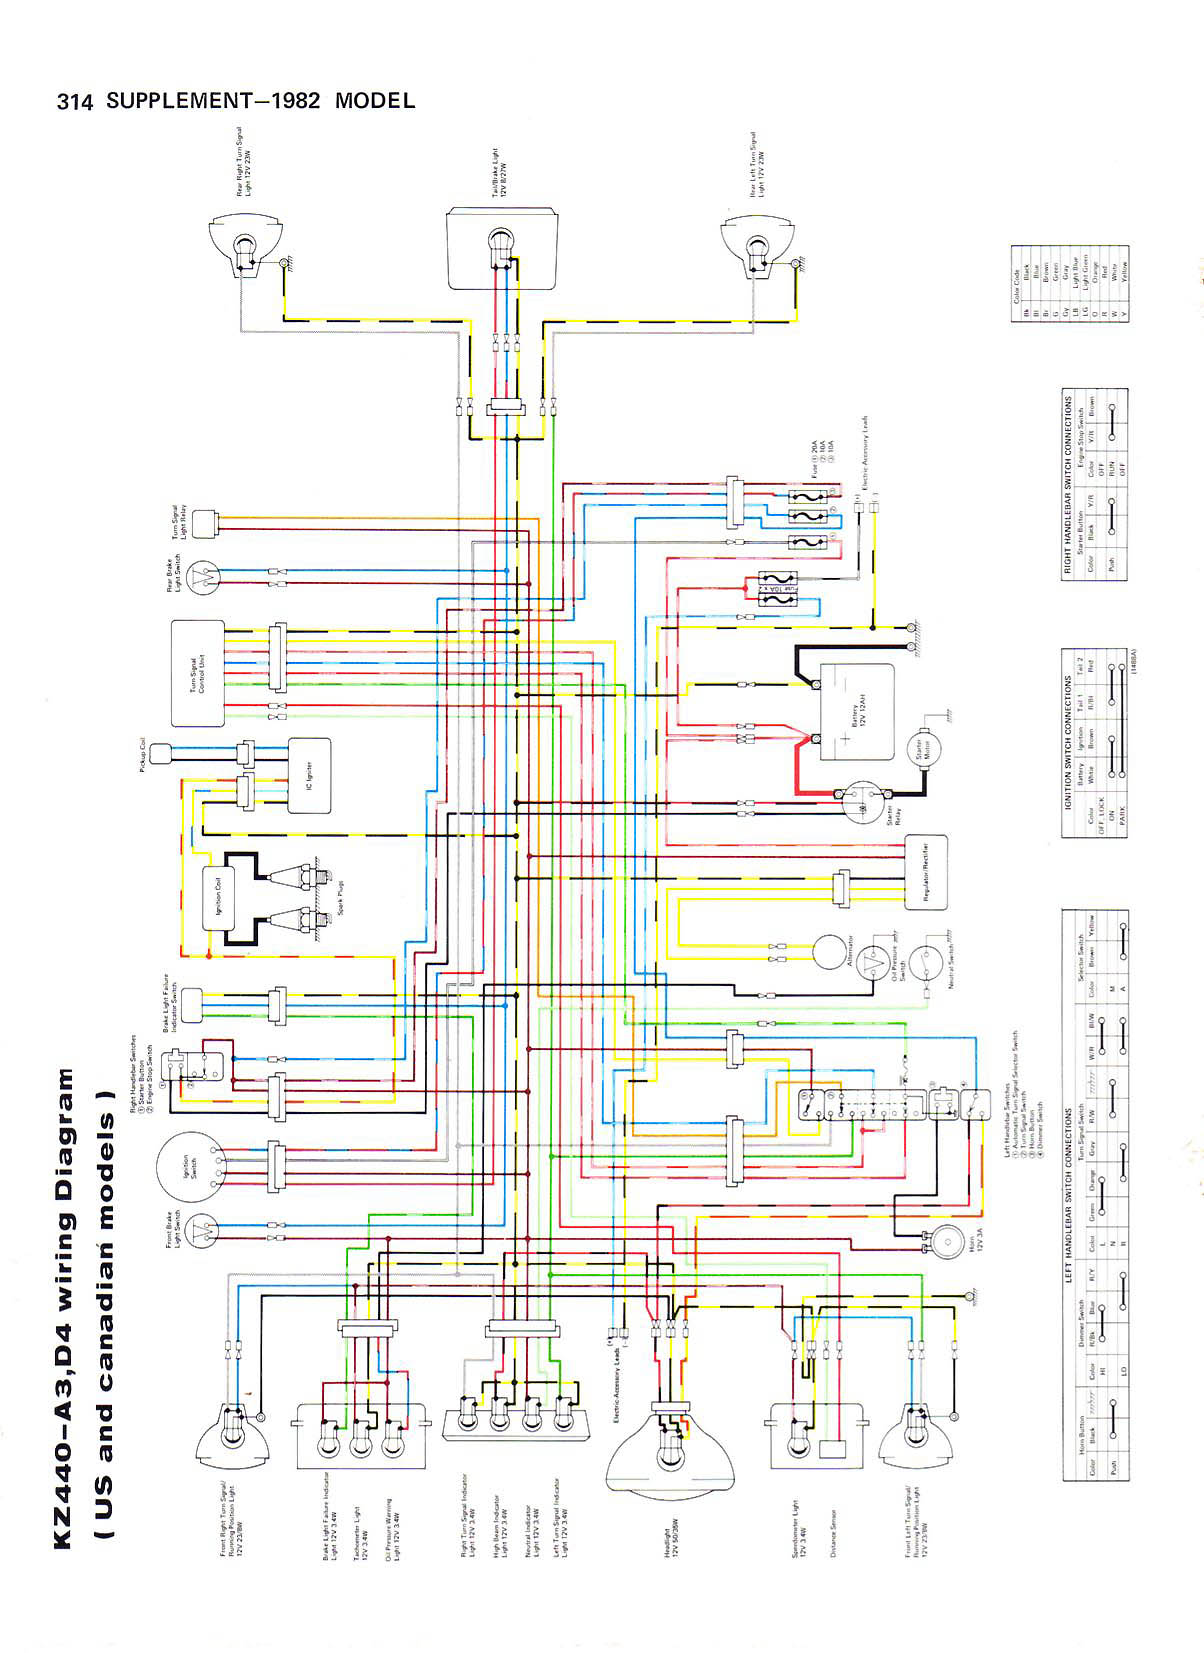 Kawasaki KZ 440 %2780 a %2782 Service Manual_Page_311 index of kz440 wiring diagrams 1980 kawasaki 440 ltd wiring diagram at bakdesigns.co